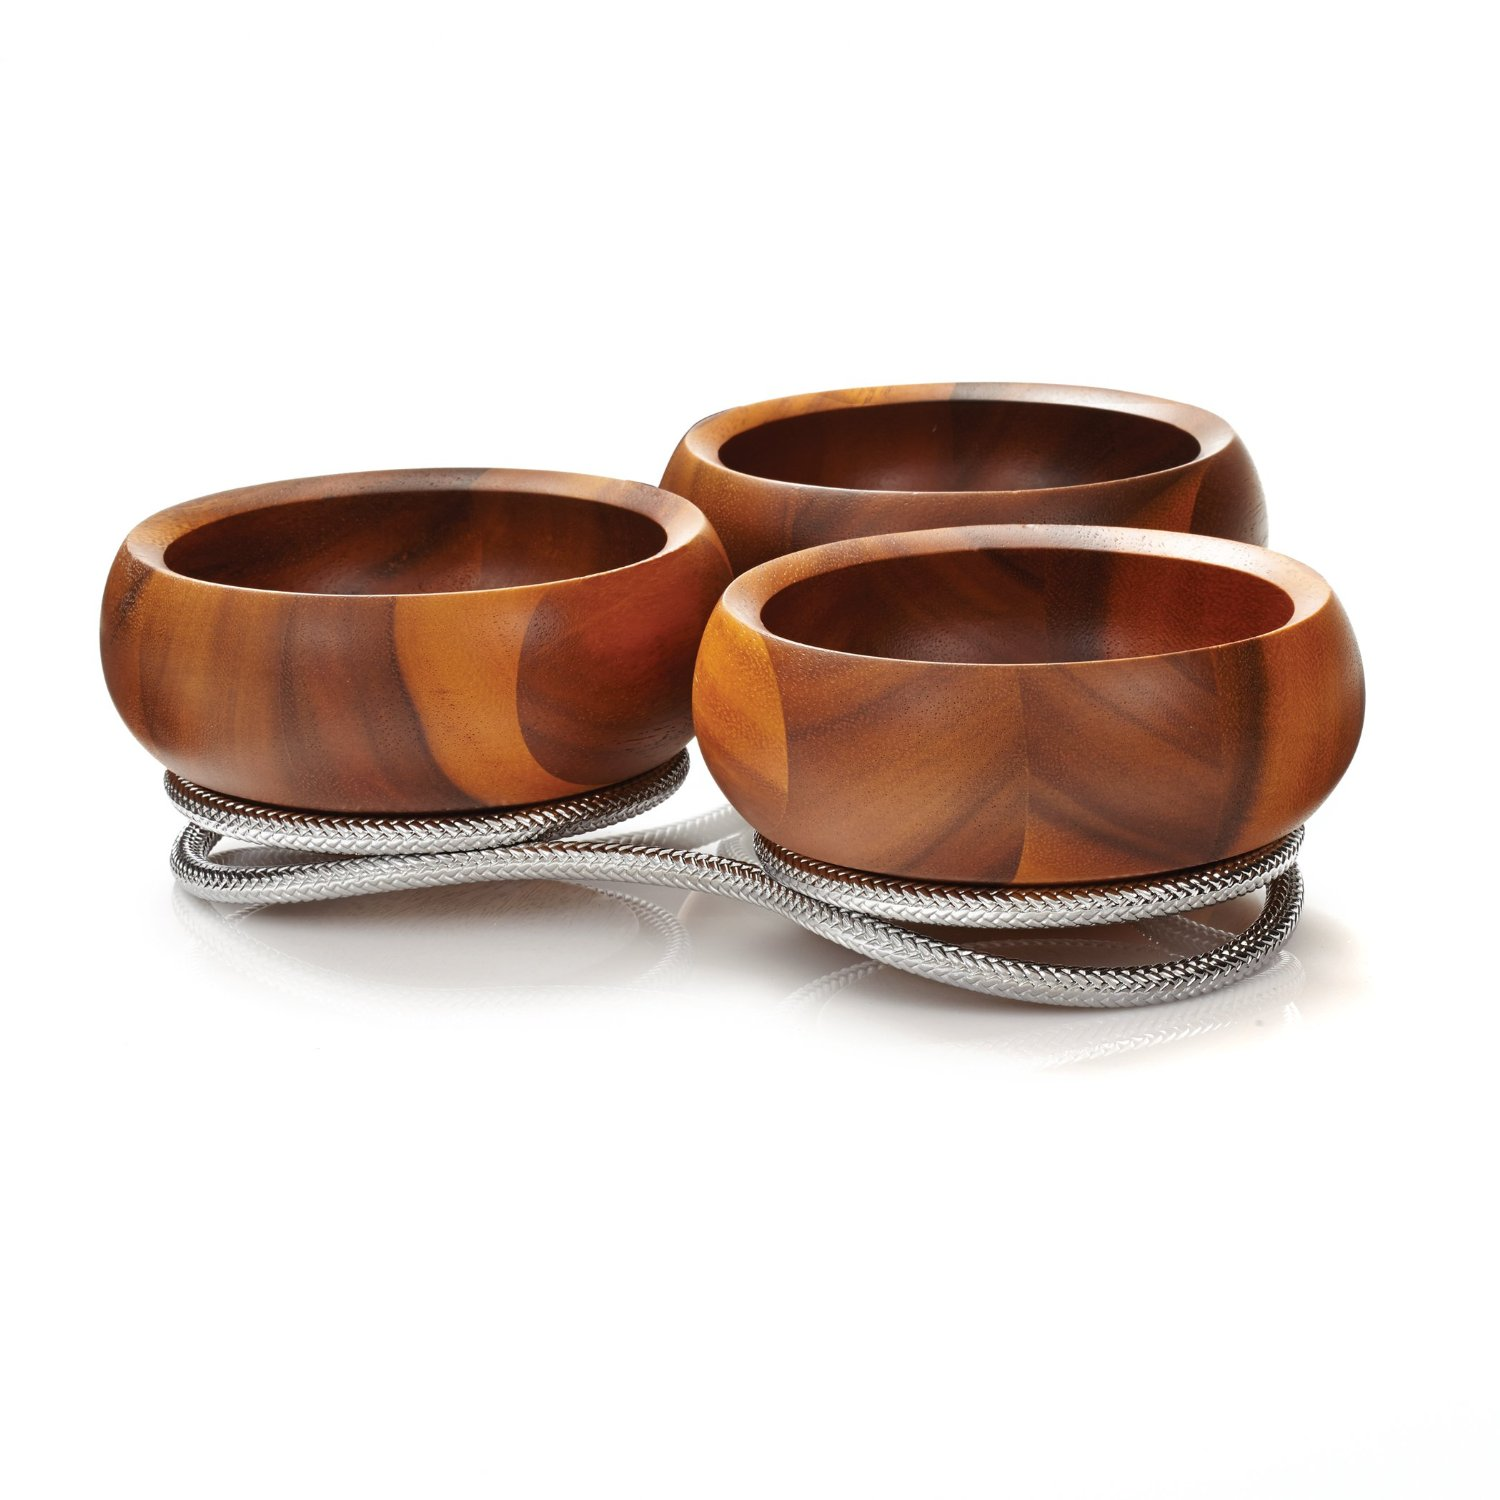 Gorgeous Nambe With Nambe Braid Condiment Server For Interior Decor Ideas With Nambe Cookware